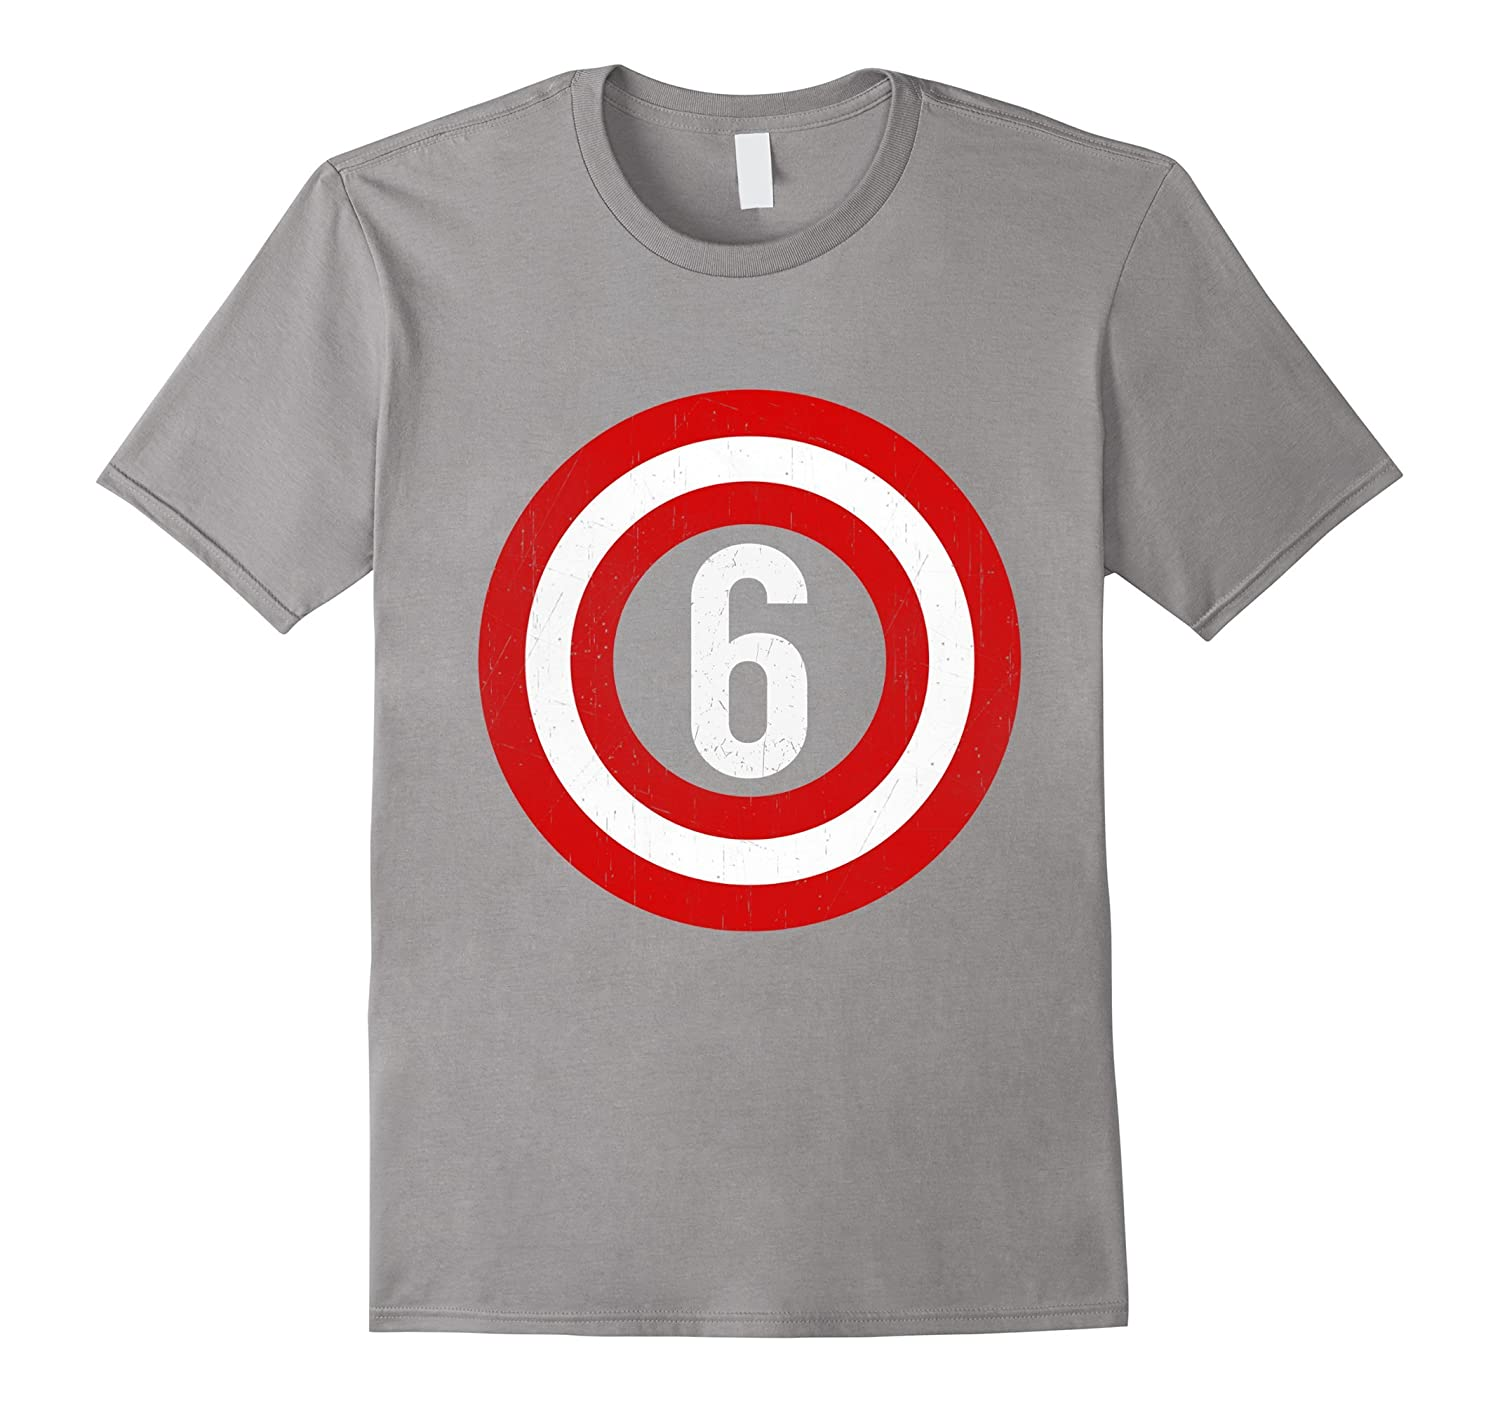 Captain 6th Birthday Tshirt Gift 6 Years Old Kids Boys Girls CL